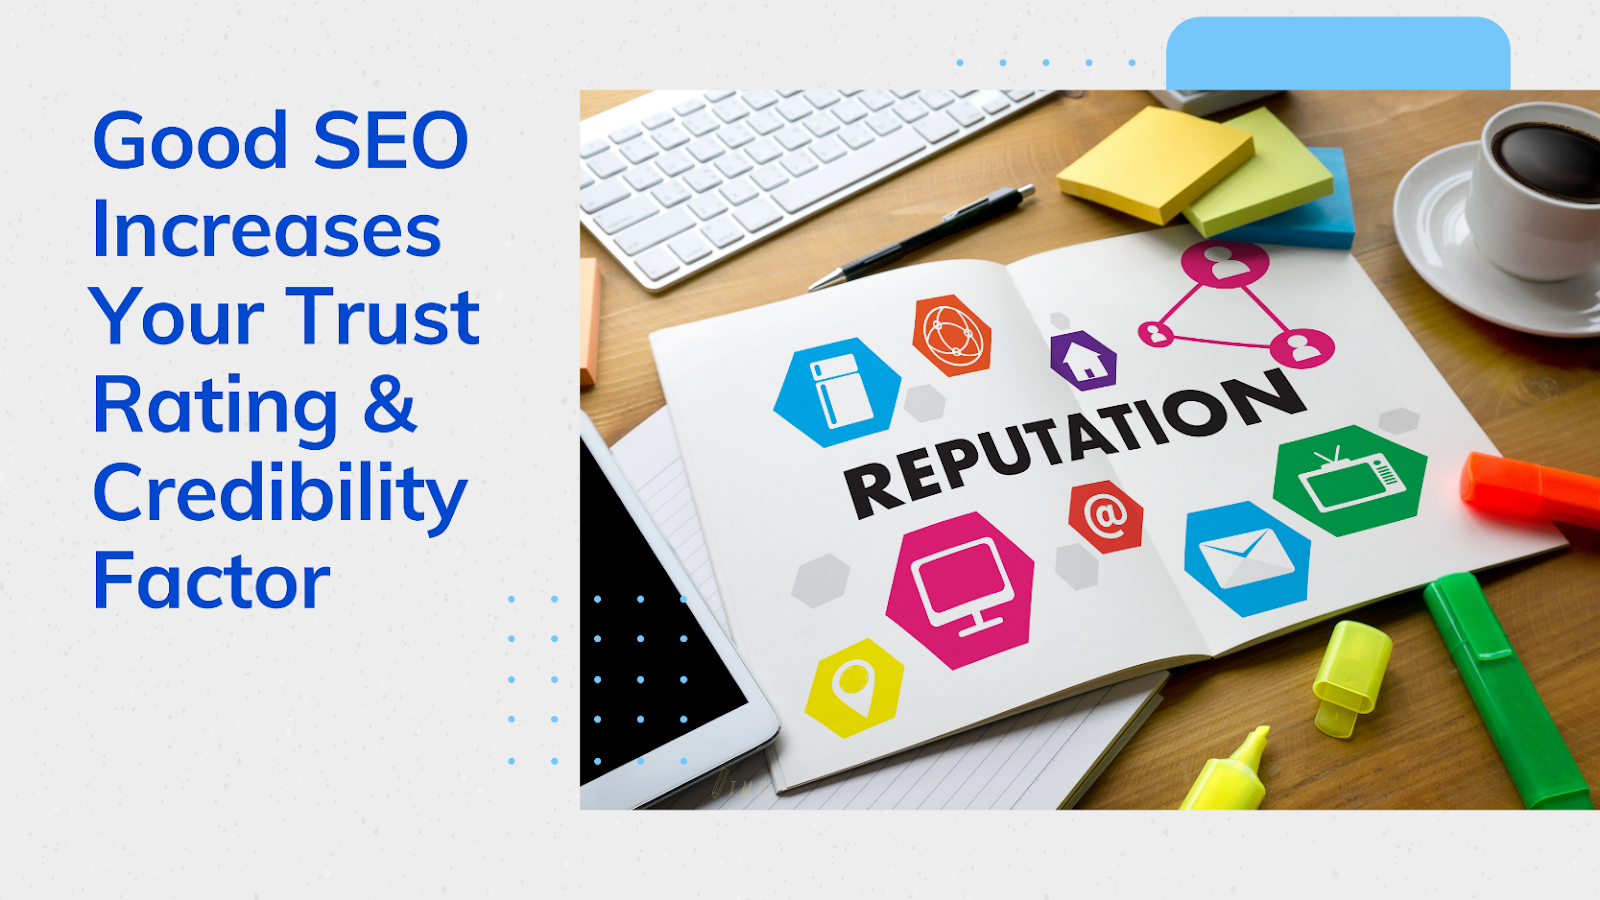 Good SEO Increases Your Trust Rating and Credibility Factor